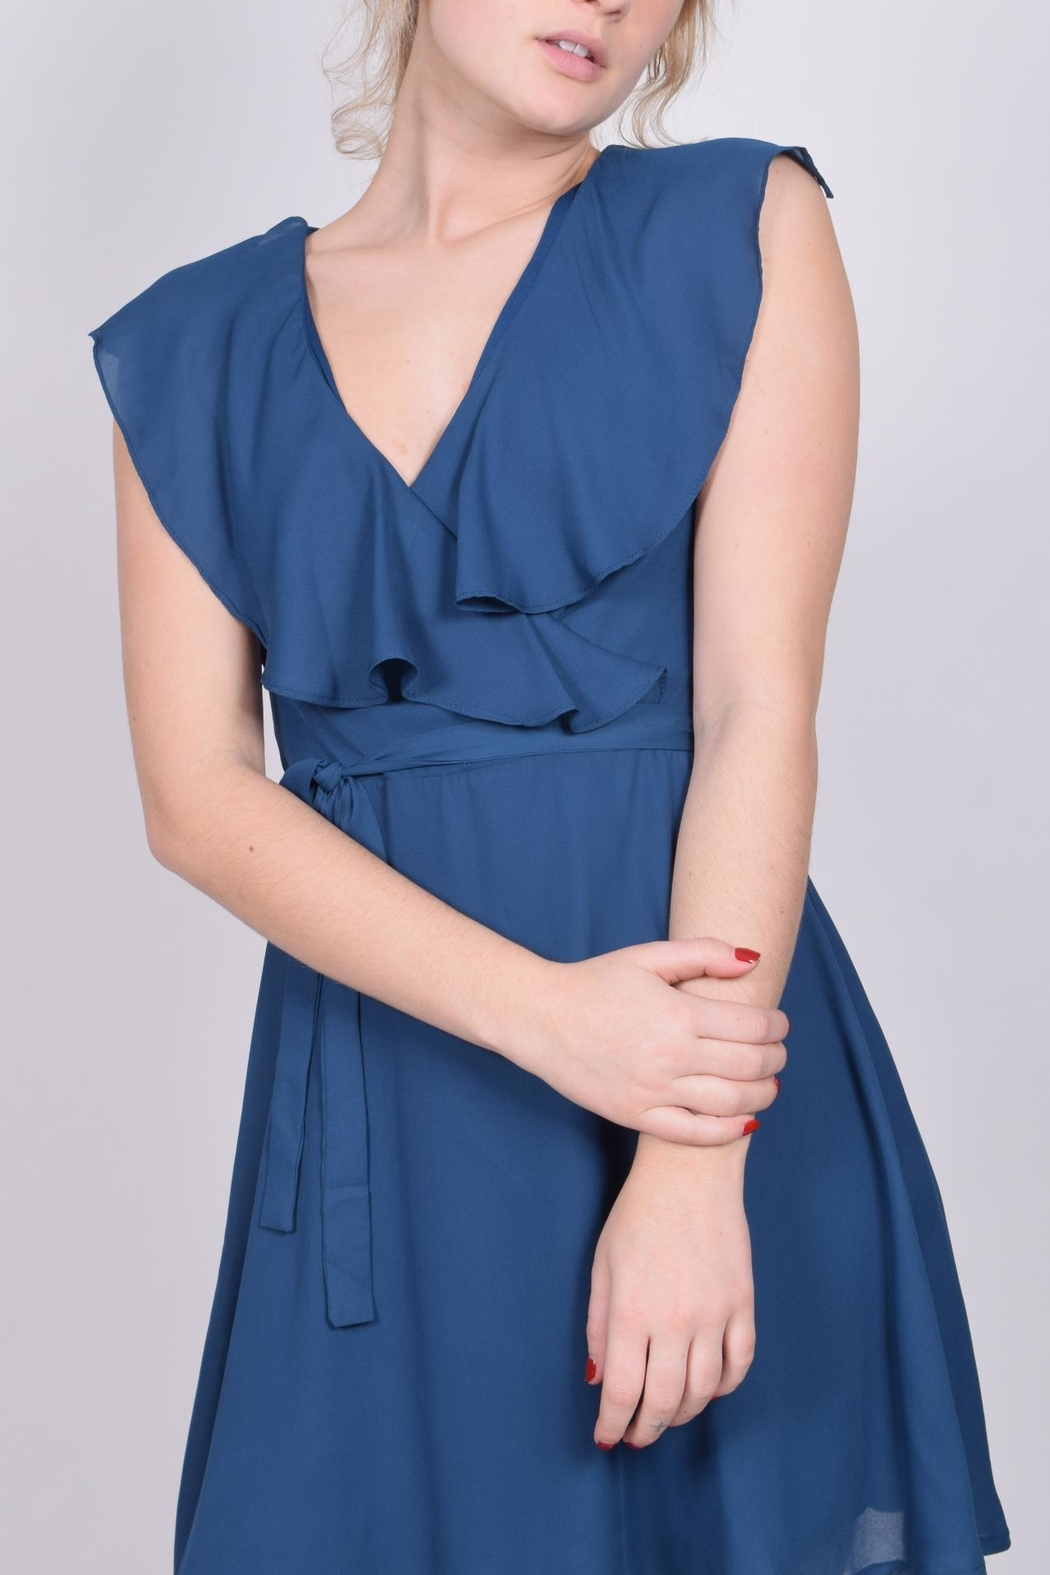 Unbranded Teal Ruffle Dress - Front Full Image